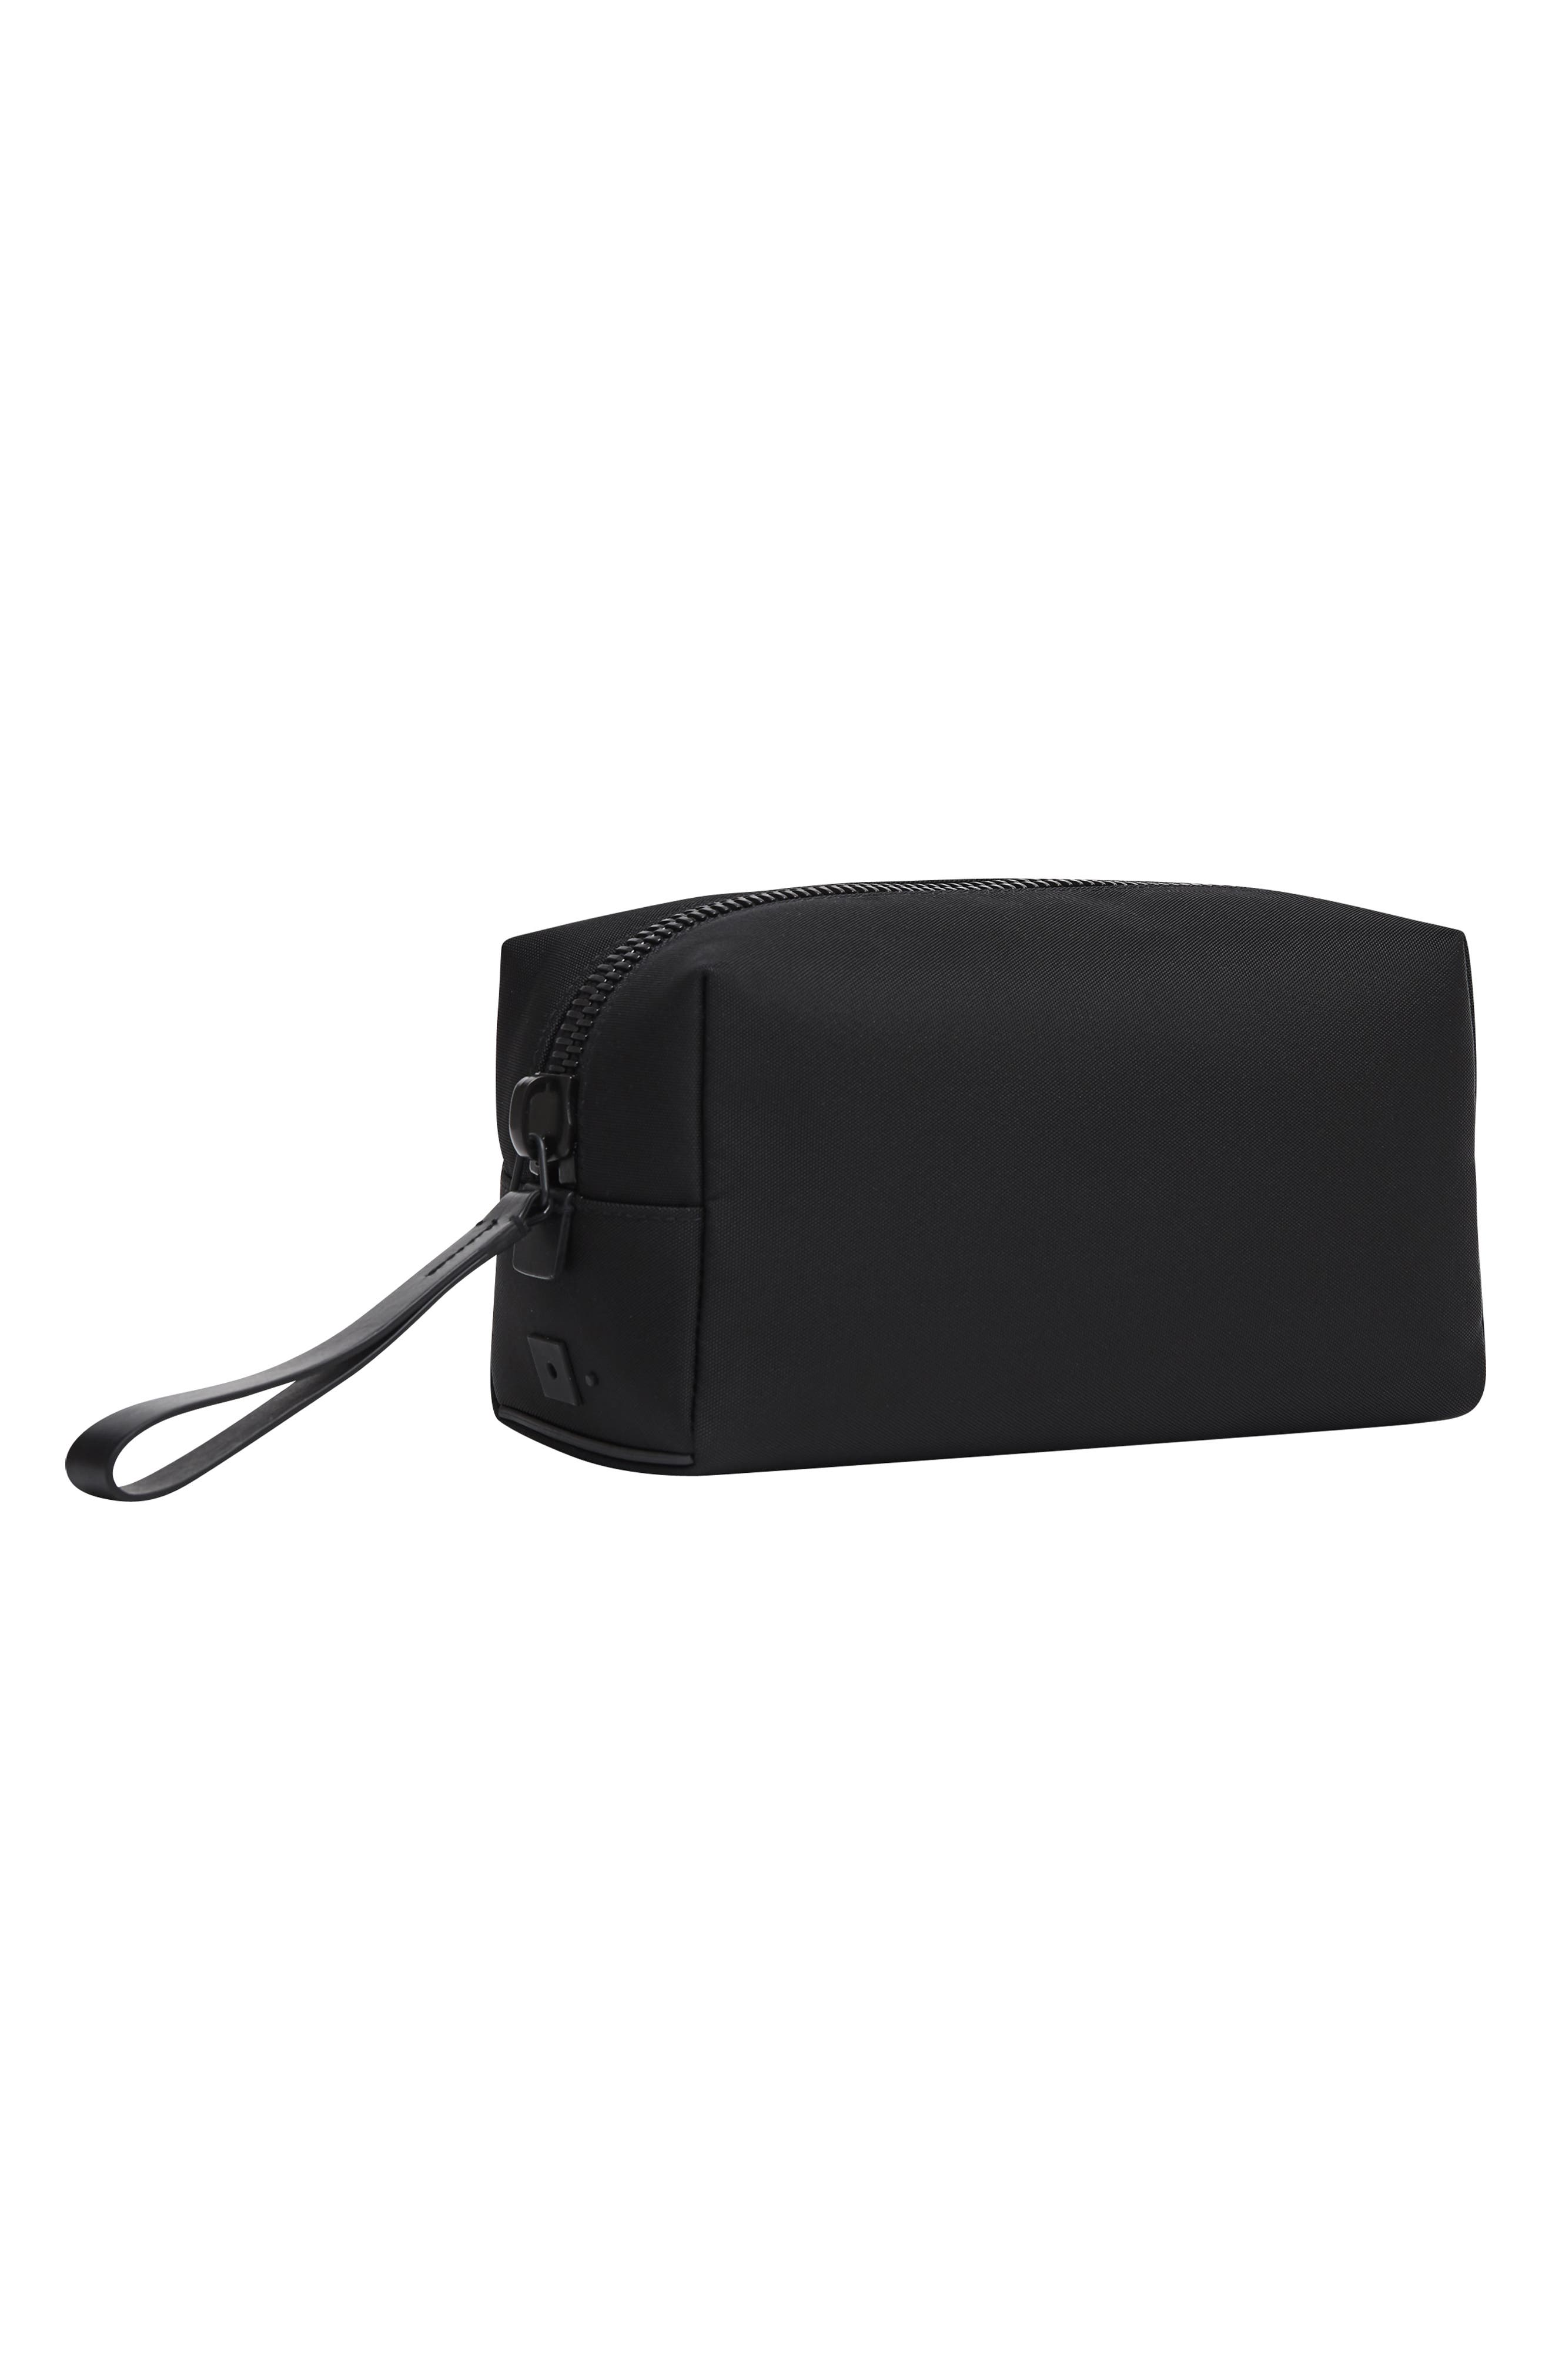 Nylon Dopp Kit,                             Alternate thumbnail 11, color,                             BLACK NYLON/ BLACK LEATHER